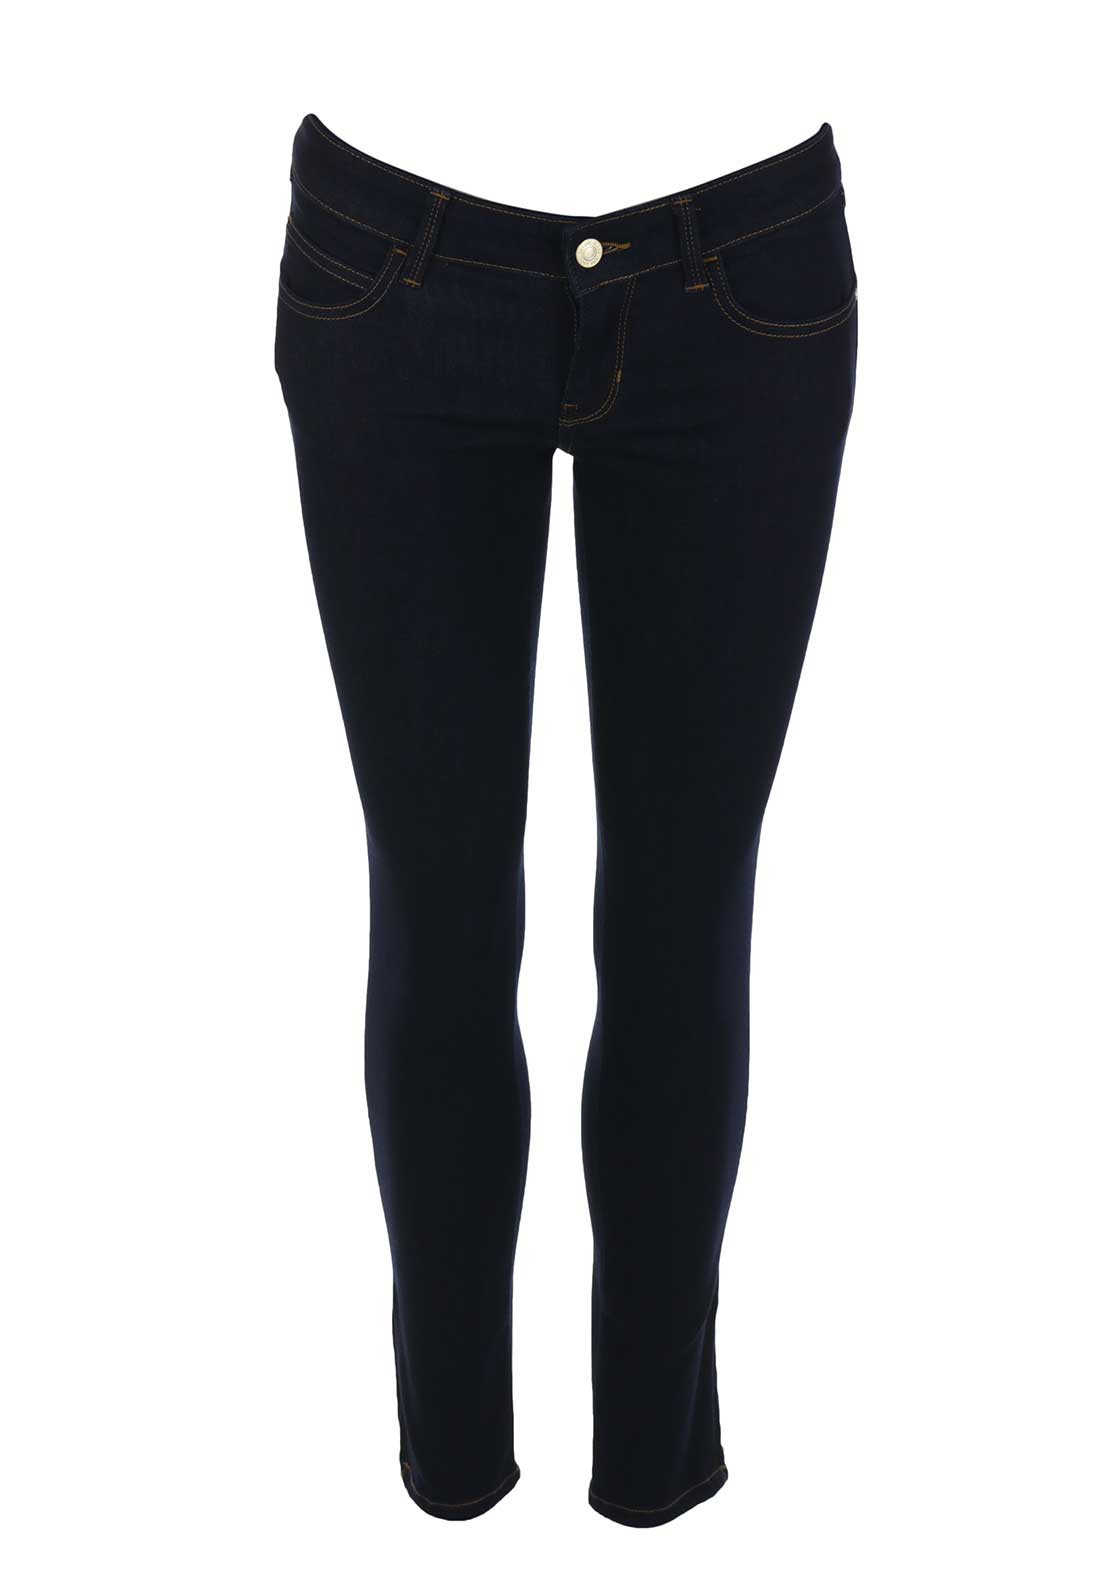 Guess Womens Marilyn 3 Zip Skinny 7/8 Jeans, Dark Blue Denim